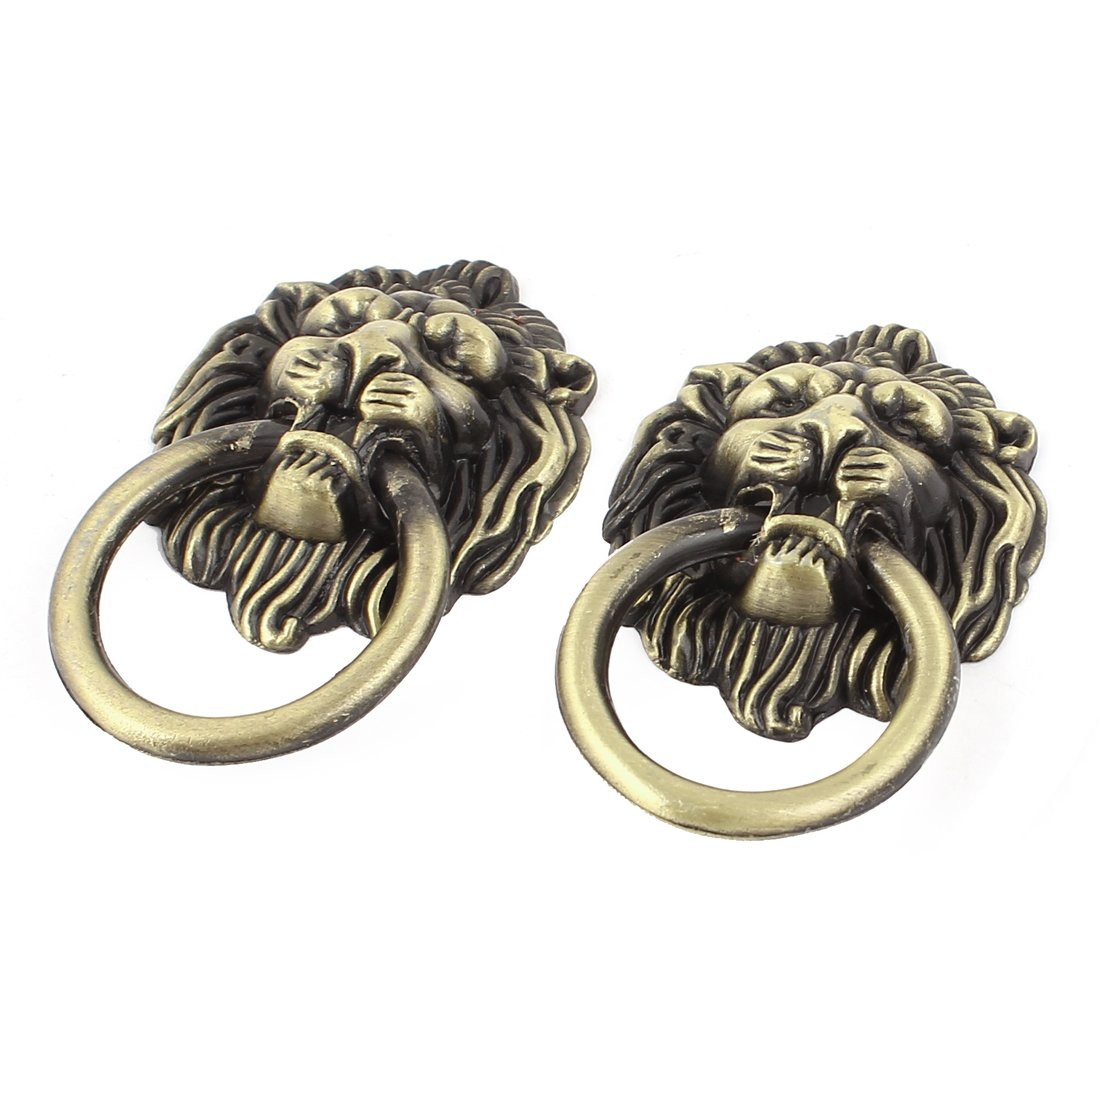 uxcell Antique Style Lion Head Design Drawer Ring Pull Handle Knob 2pcs a15072400ux1141